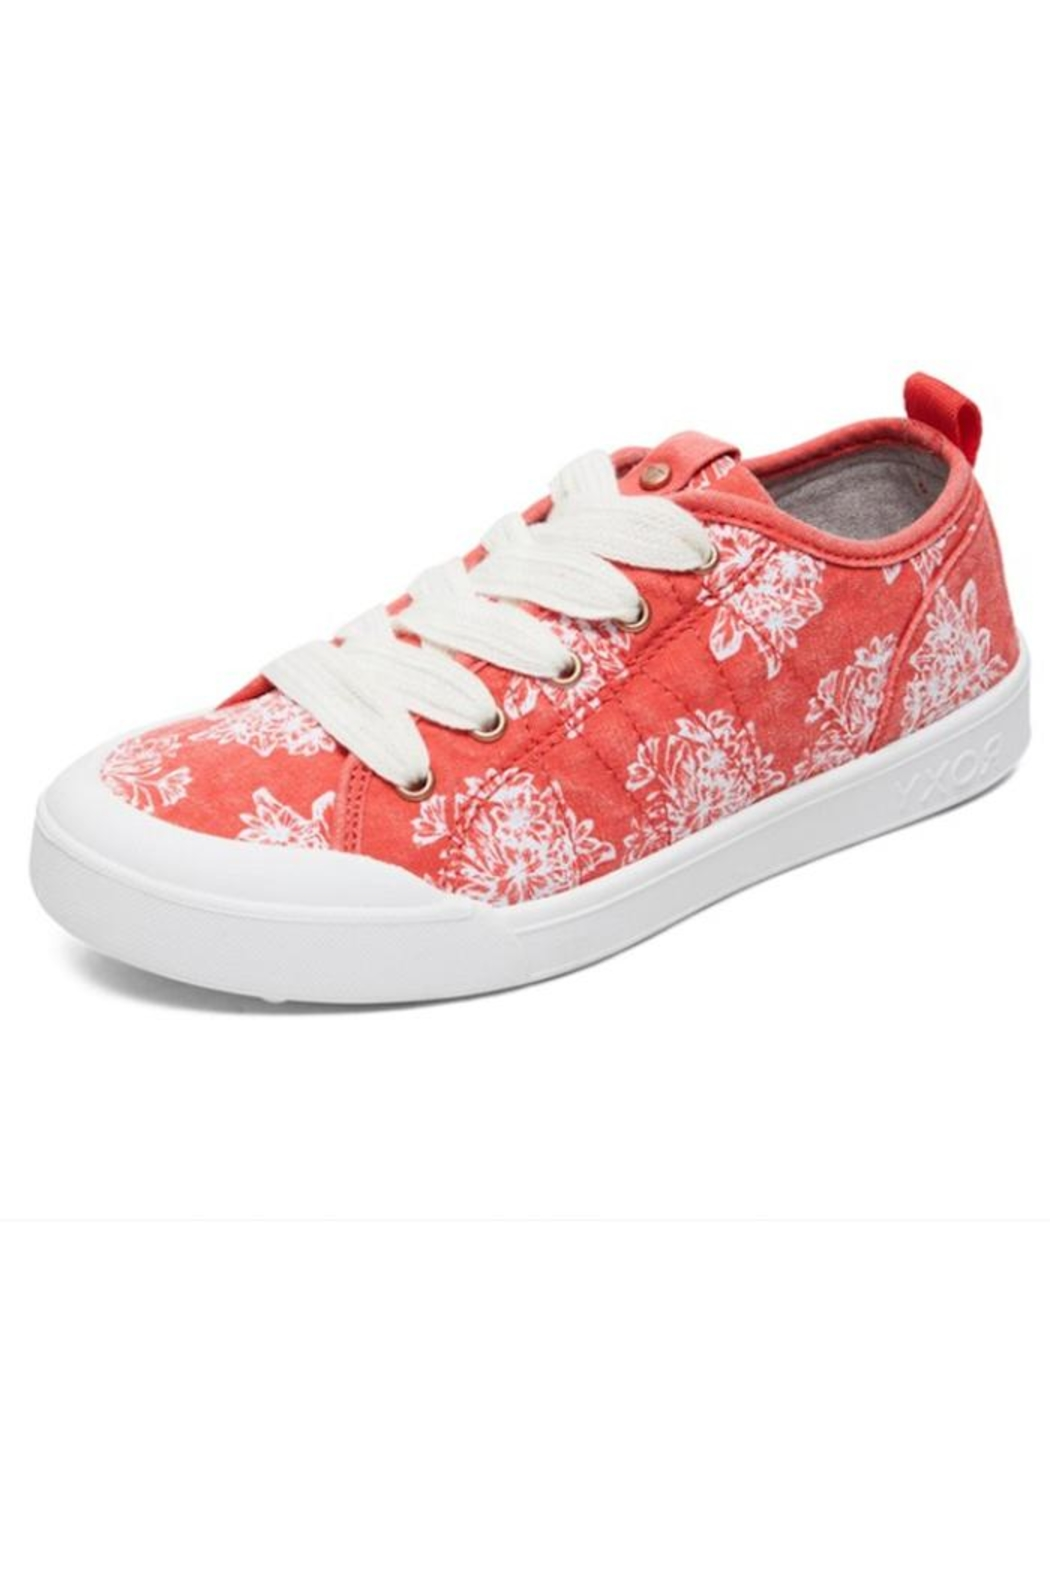 255cc4055cc91a Roxy Floral Print Sneaker from Oregon by Patina Soul — Shoptiques